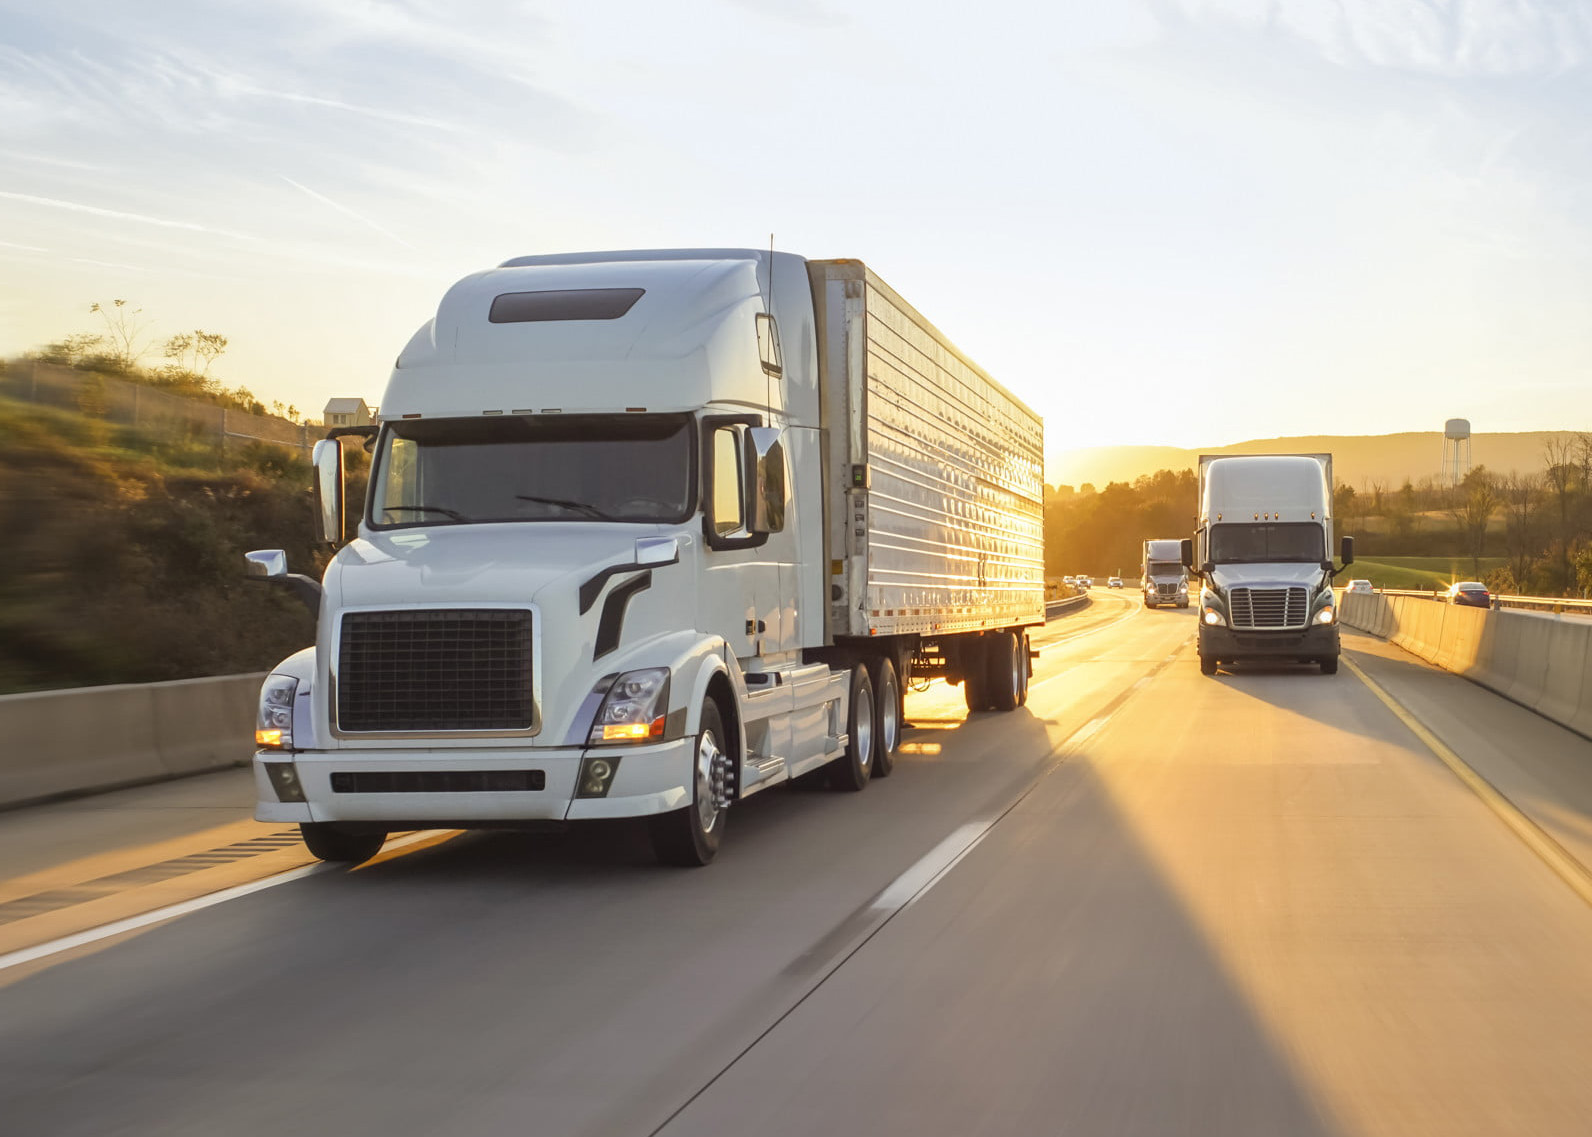 Third party CDl Test site in PA